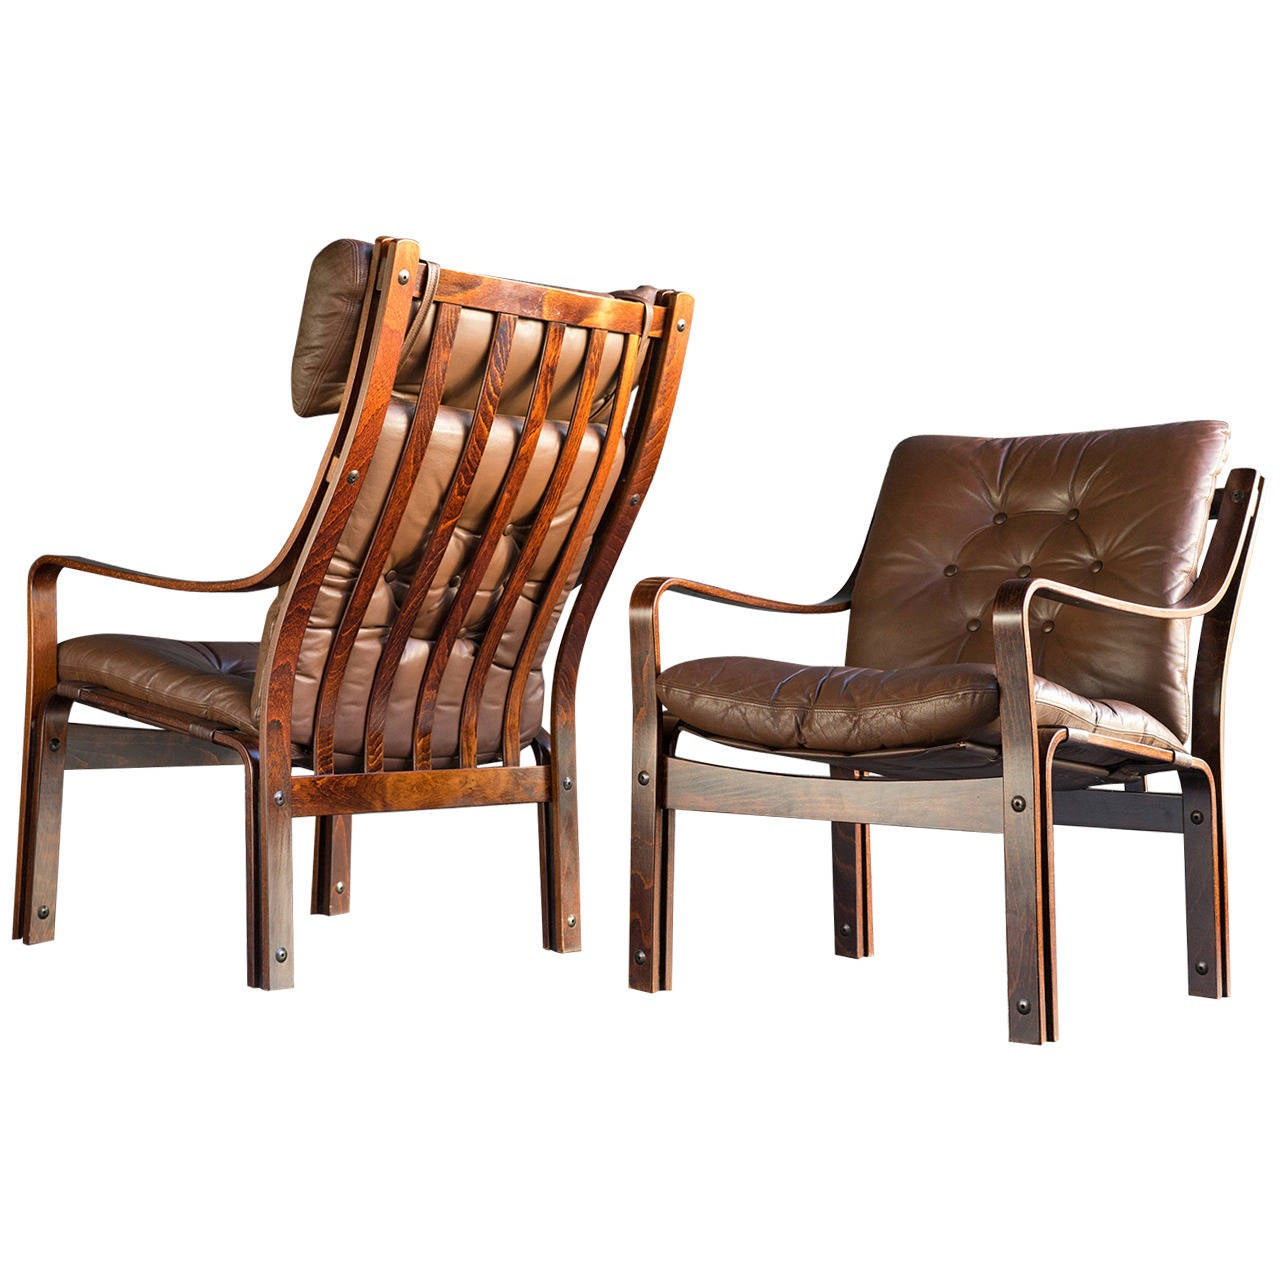 Scandinavian Modern Leather Lounge Chairs At 1stdibs